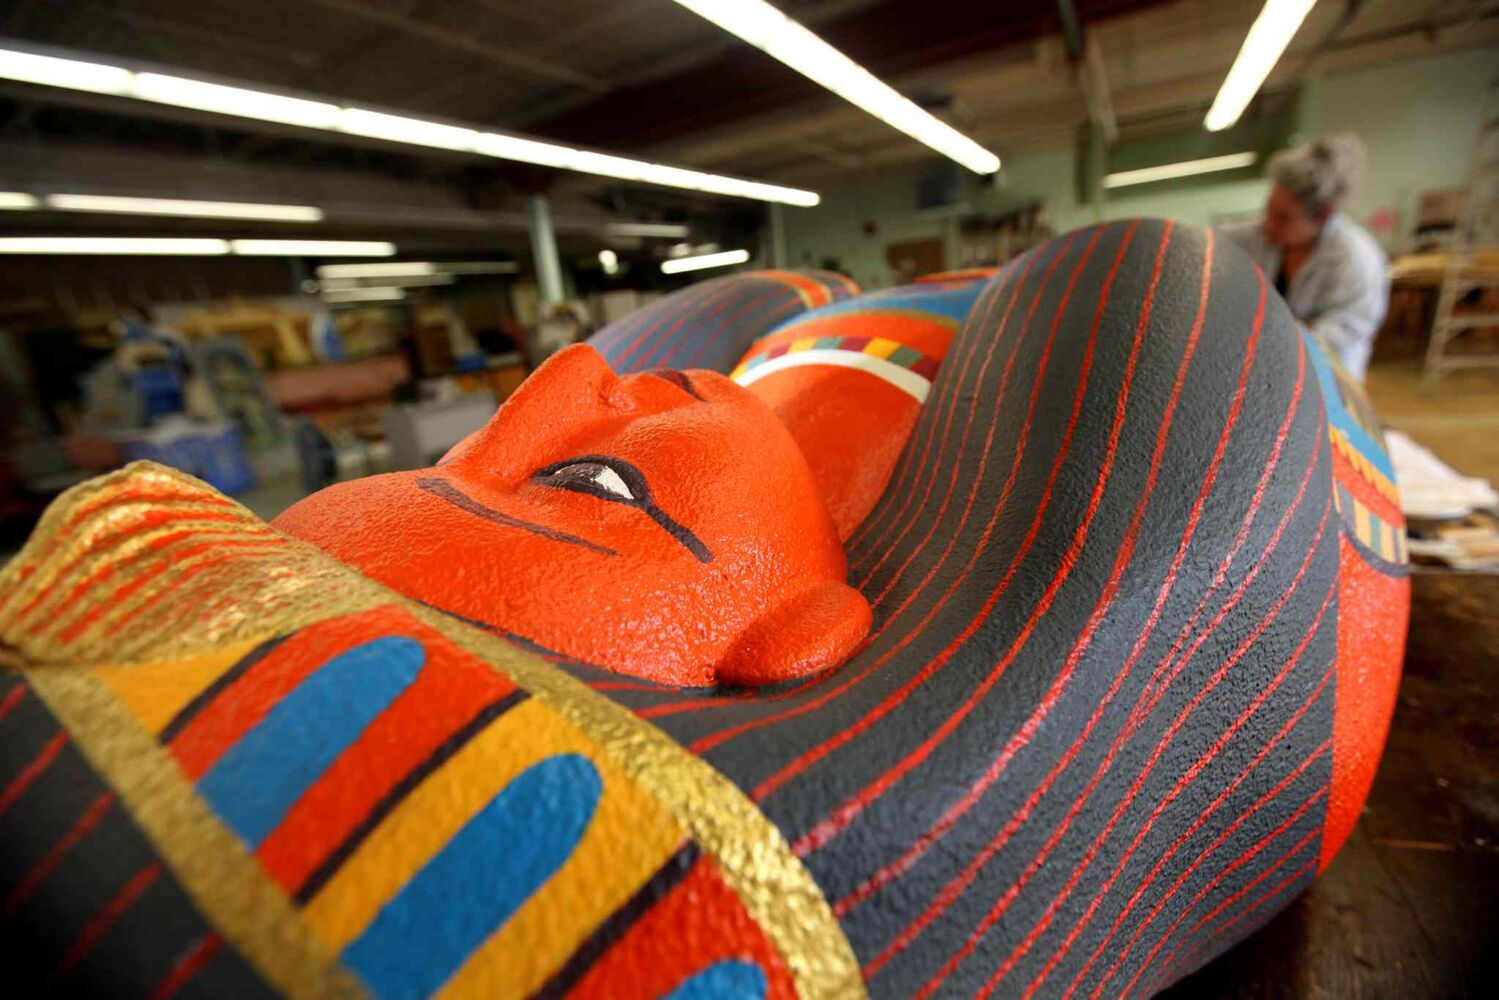 The sarcophagus features vibrant colours throughout. (Ruth Bonneville / Winnipeg Free Press)